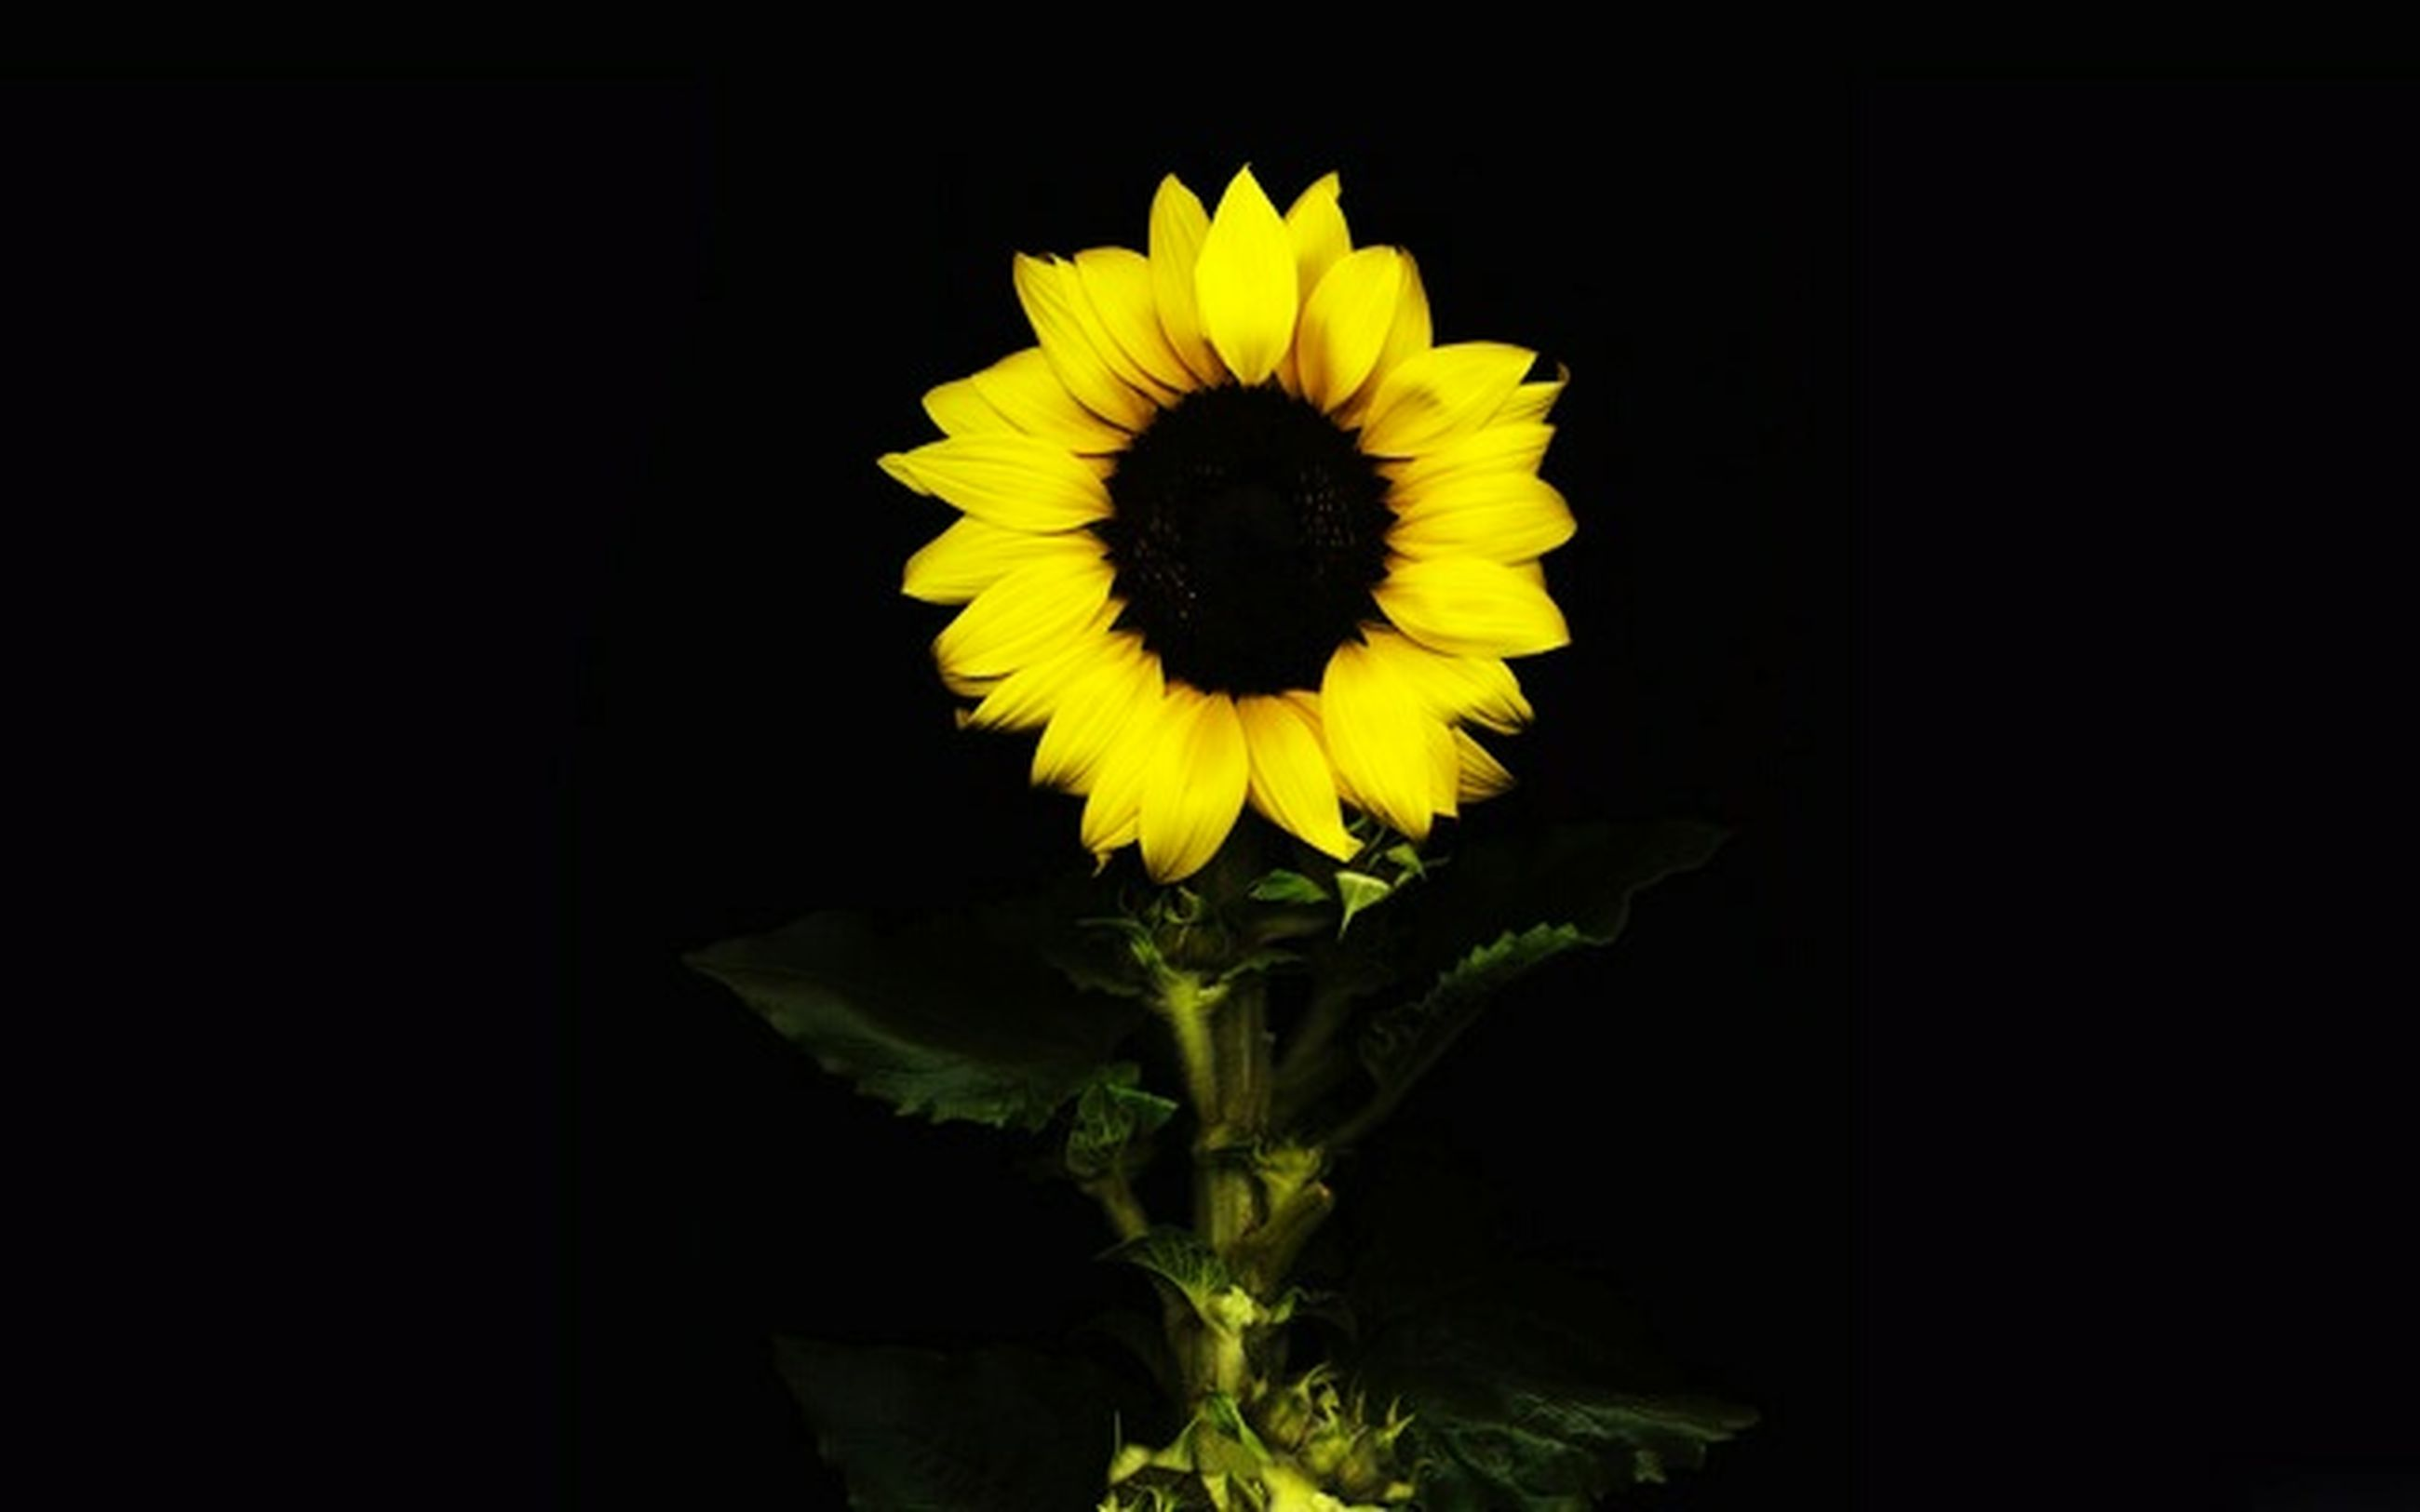 flower, yellow, petal, freshness, flower head, fragility, sunflower, beauty in nature, studio shot, growth, single flower, plant, nature, black background, close-up, blooming, copy space, stem, pollen, leaf